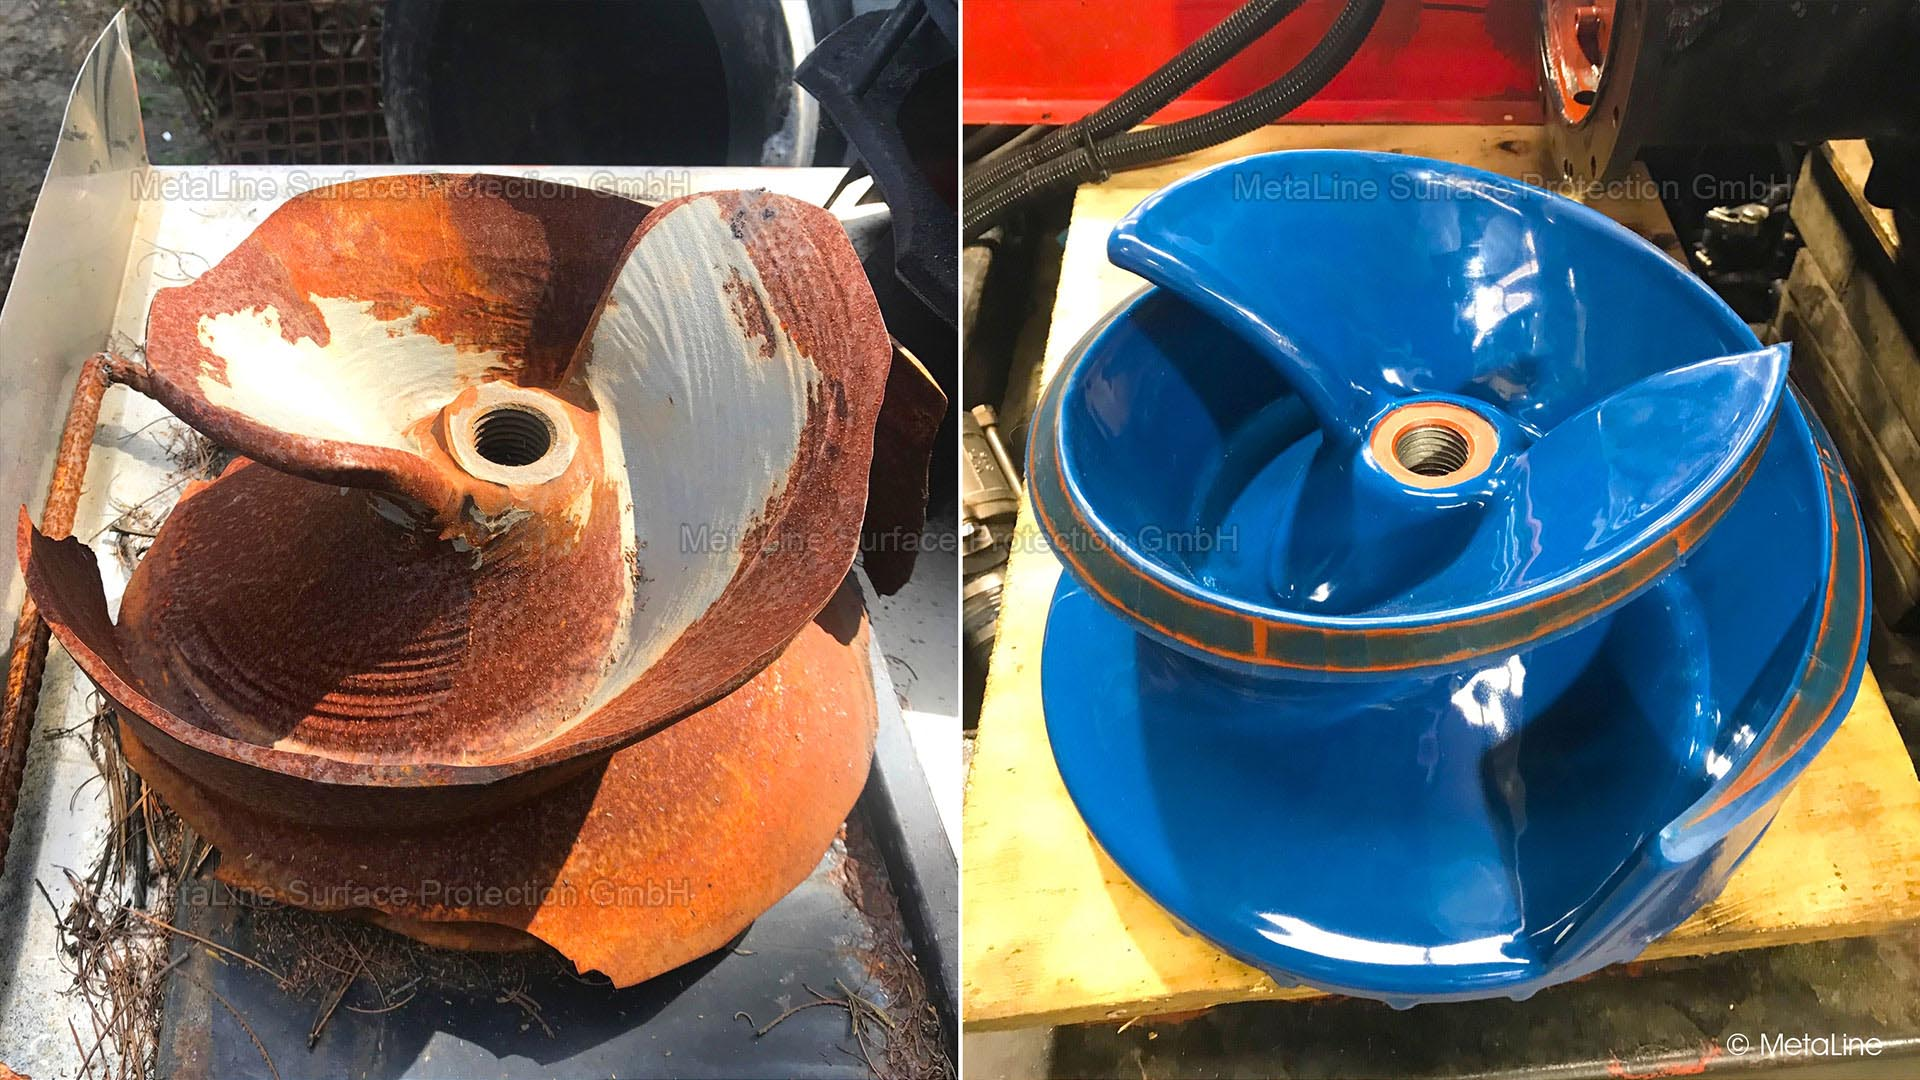 MetaLine | repair compounds to maintain pump impellers